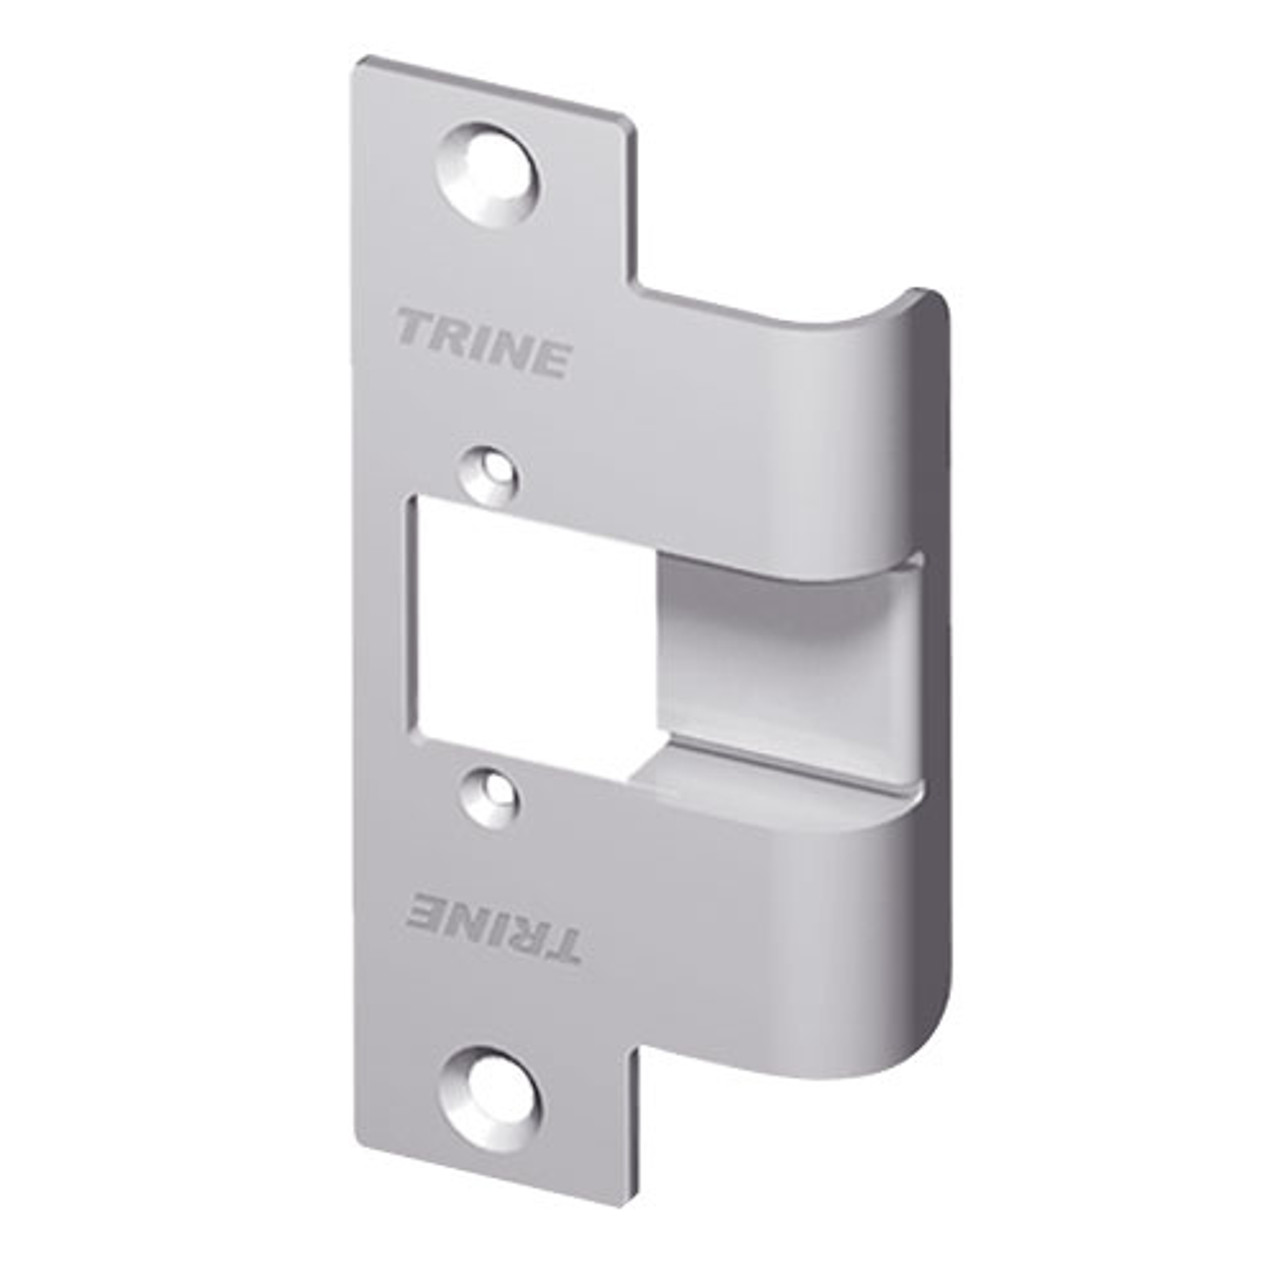 478X-375-RD-US32D Trine 3000 Series Asa Strike Extended Faceplate with Radiused Corners in Satin Stainless Steel Finish